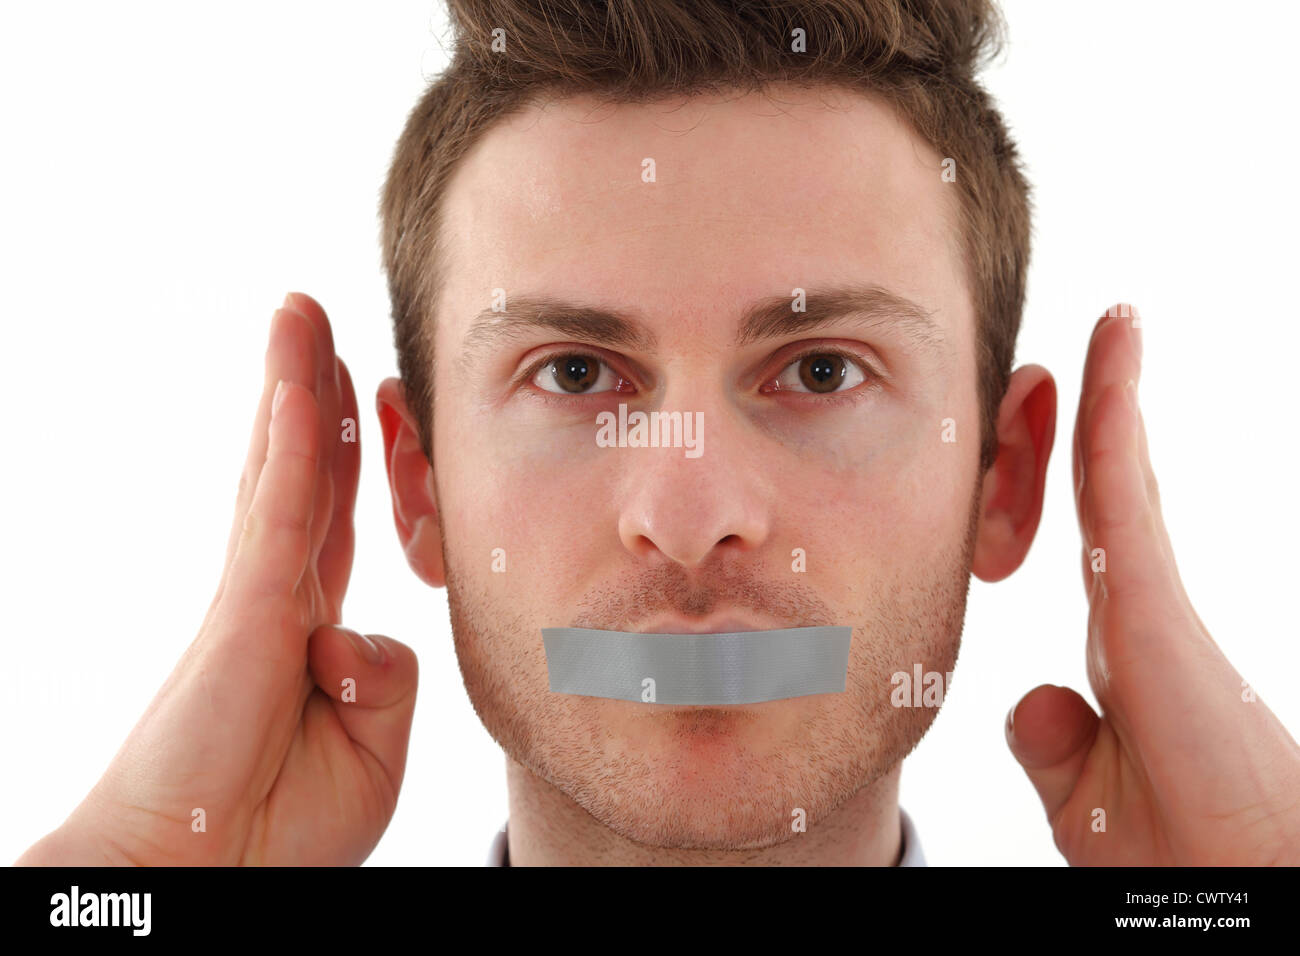 Young Russian man censored with tape - Stock Image